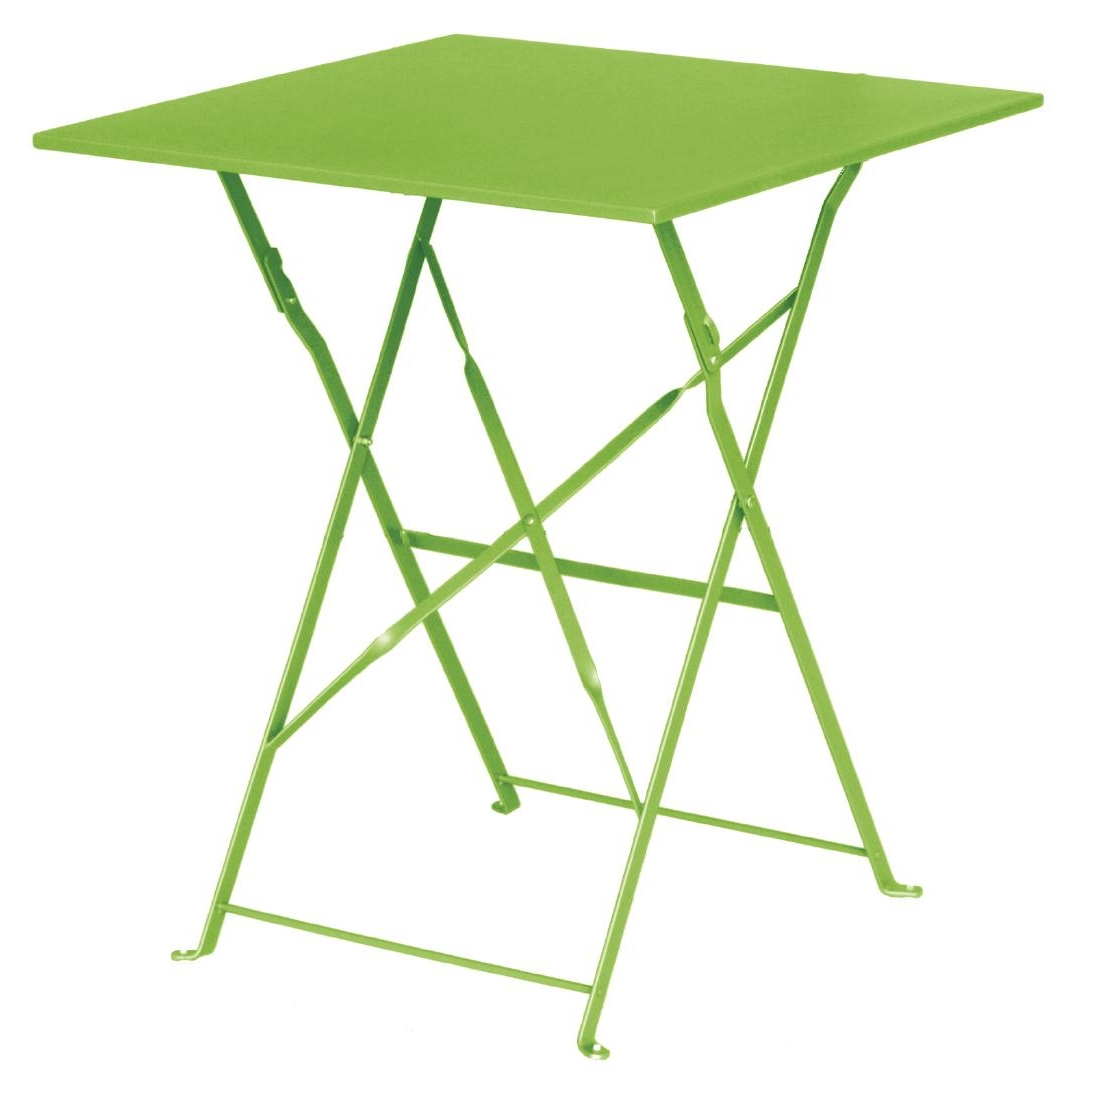 Pavement Table – The Parisian – Green